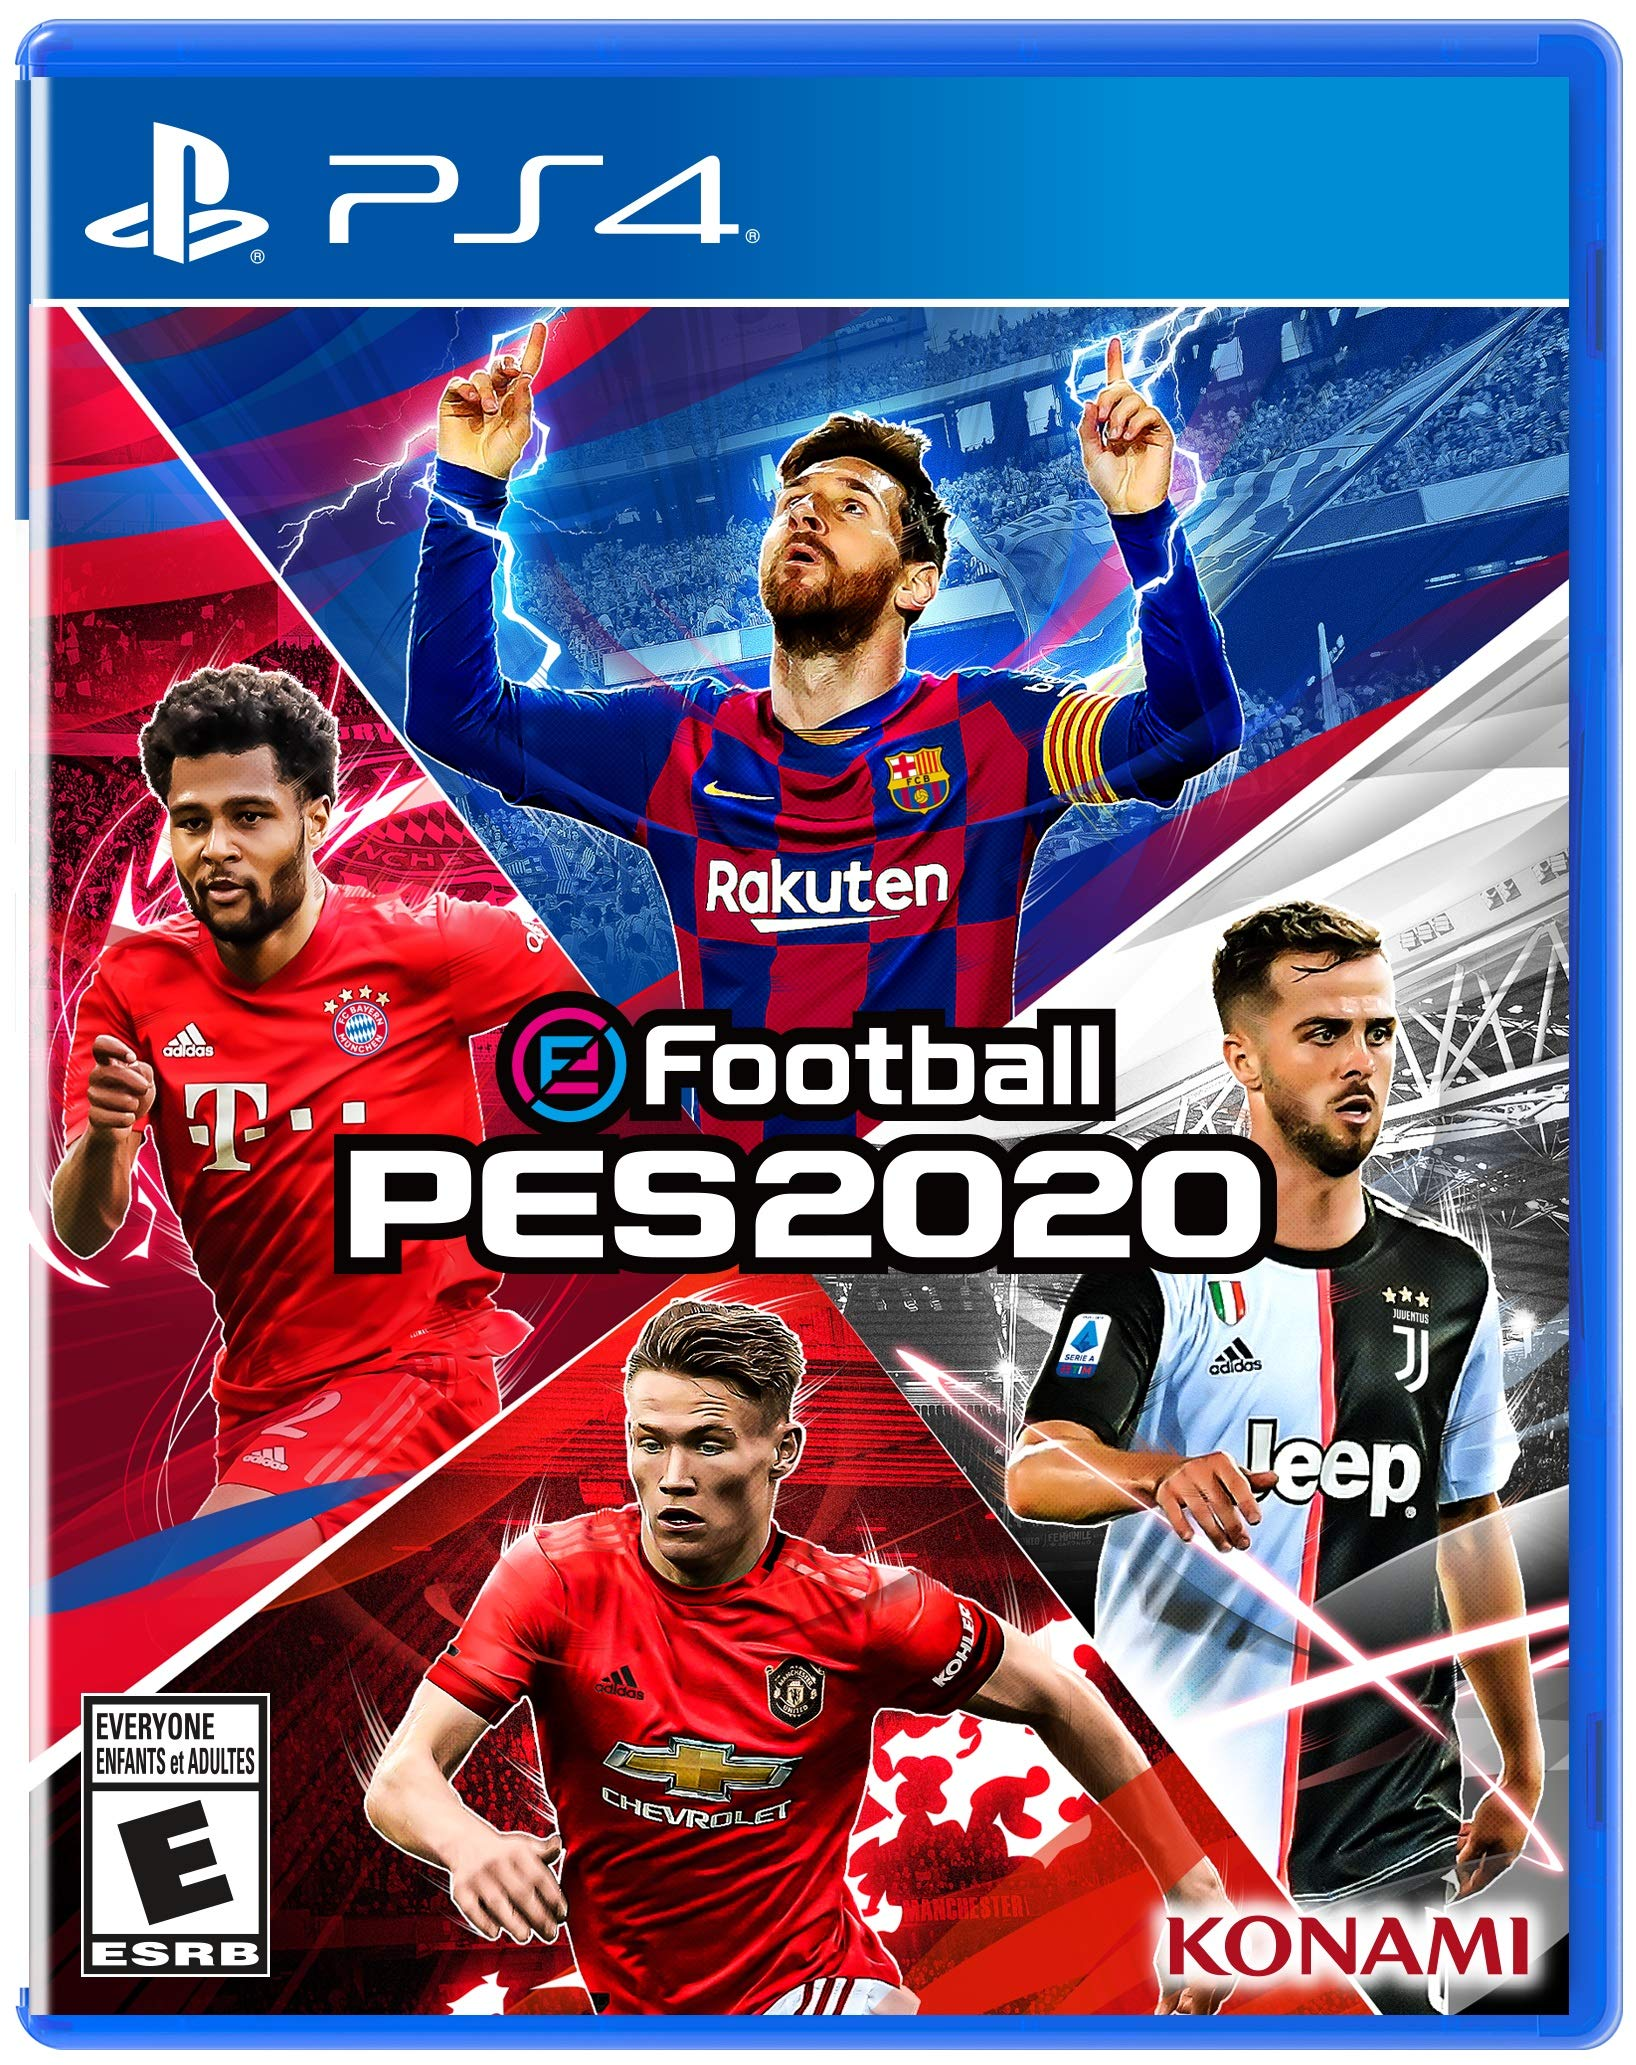 Download PES 2020 Arabic PS4  Direct links